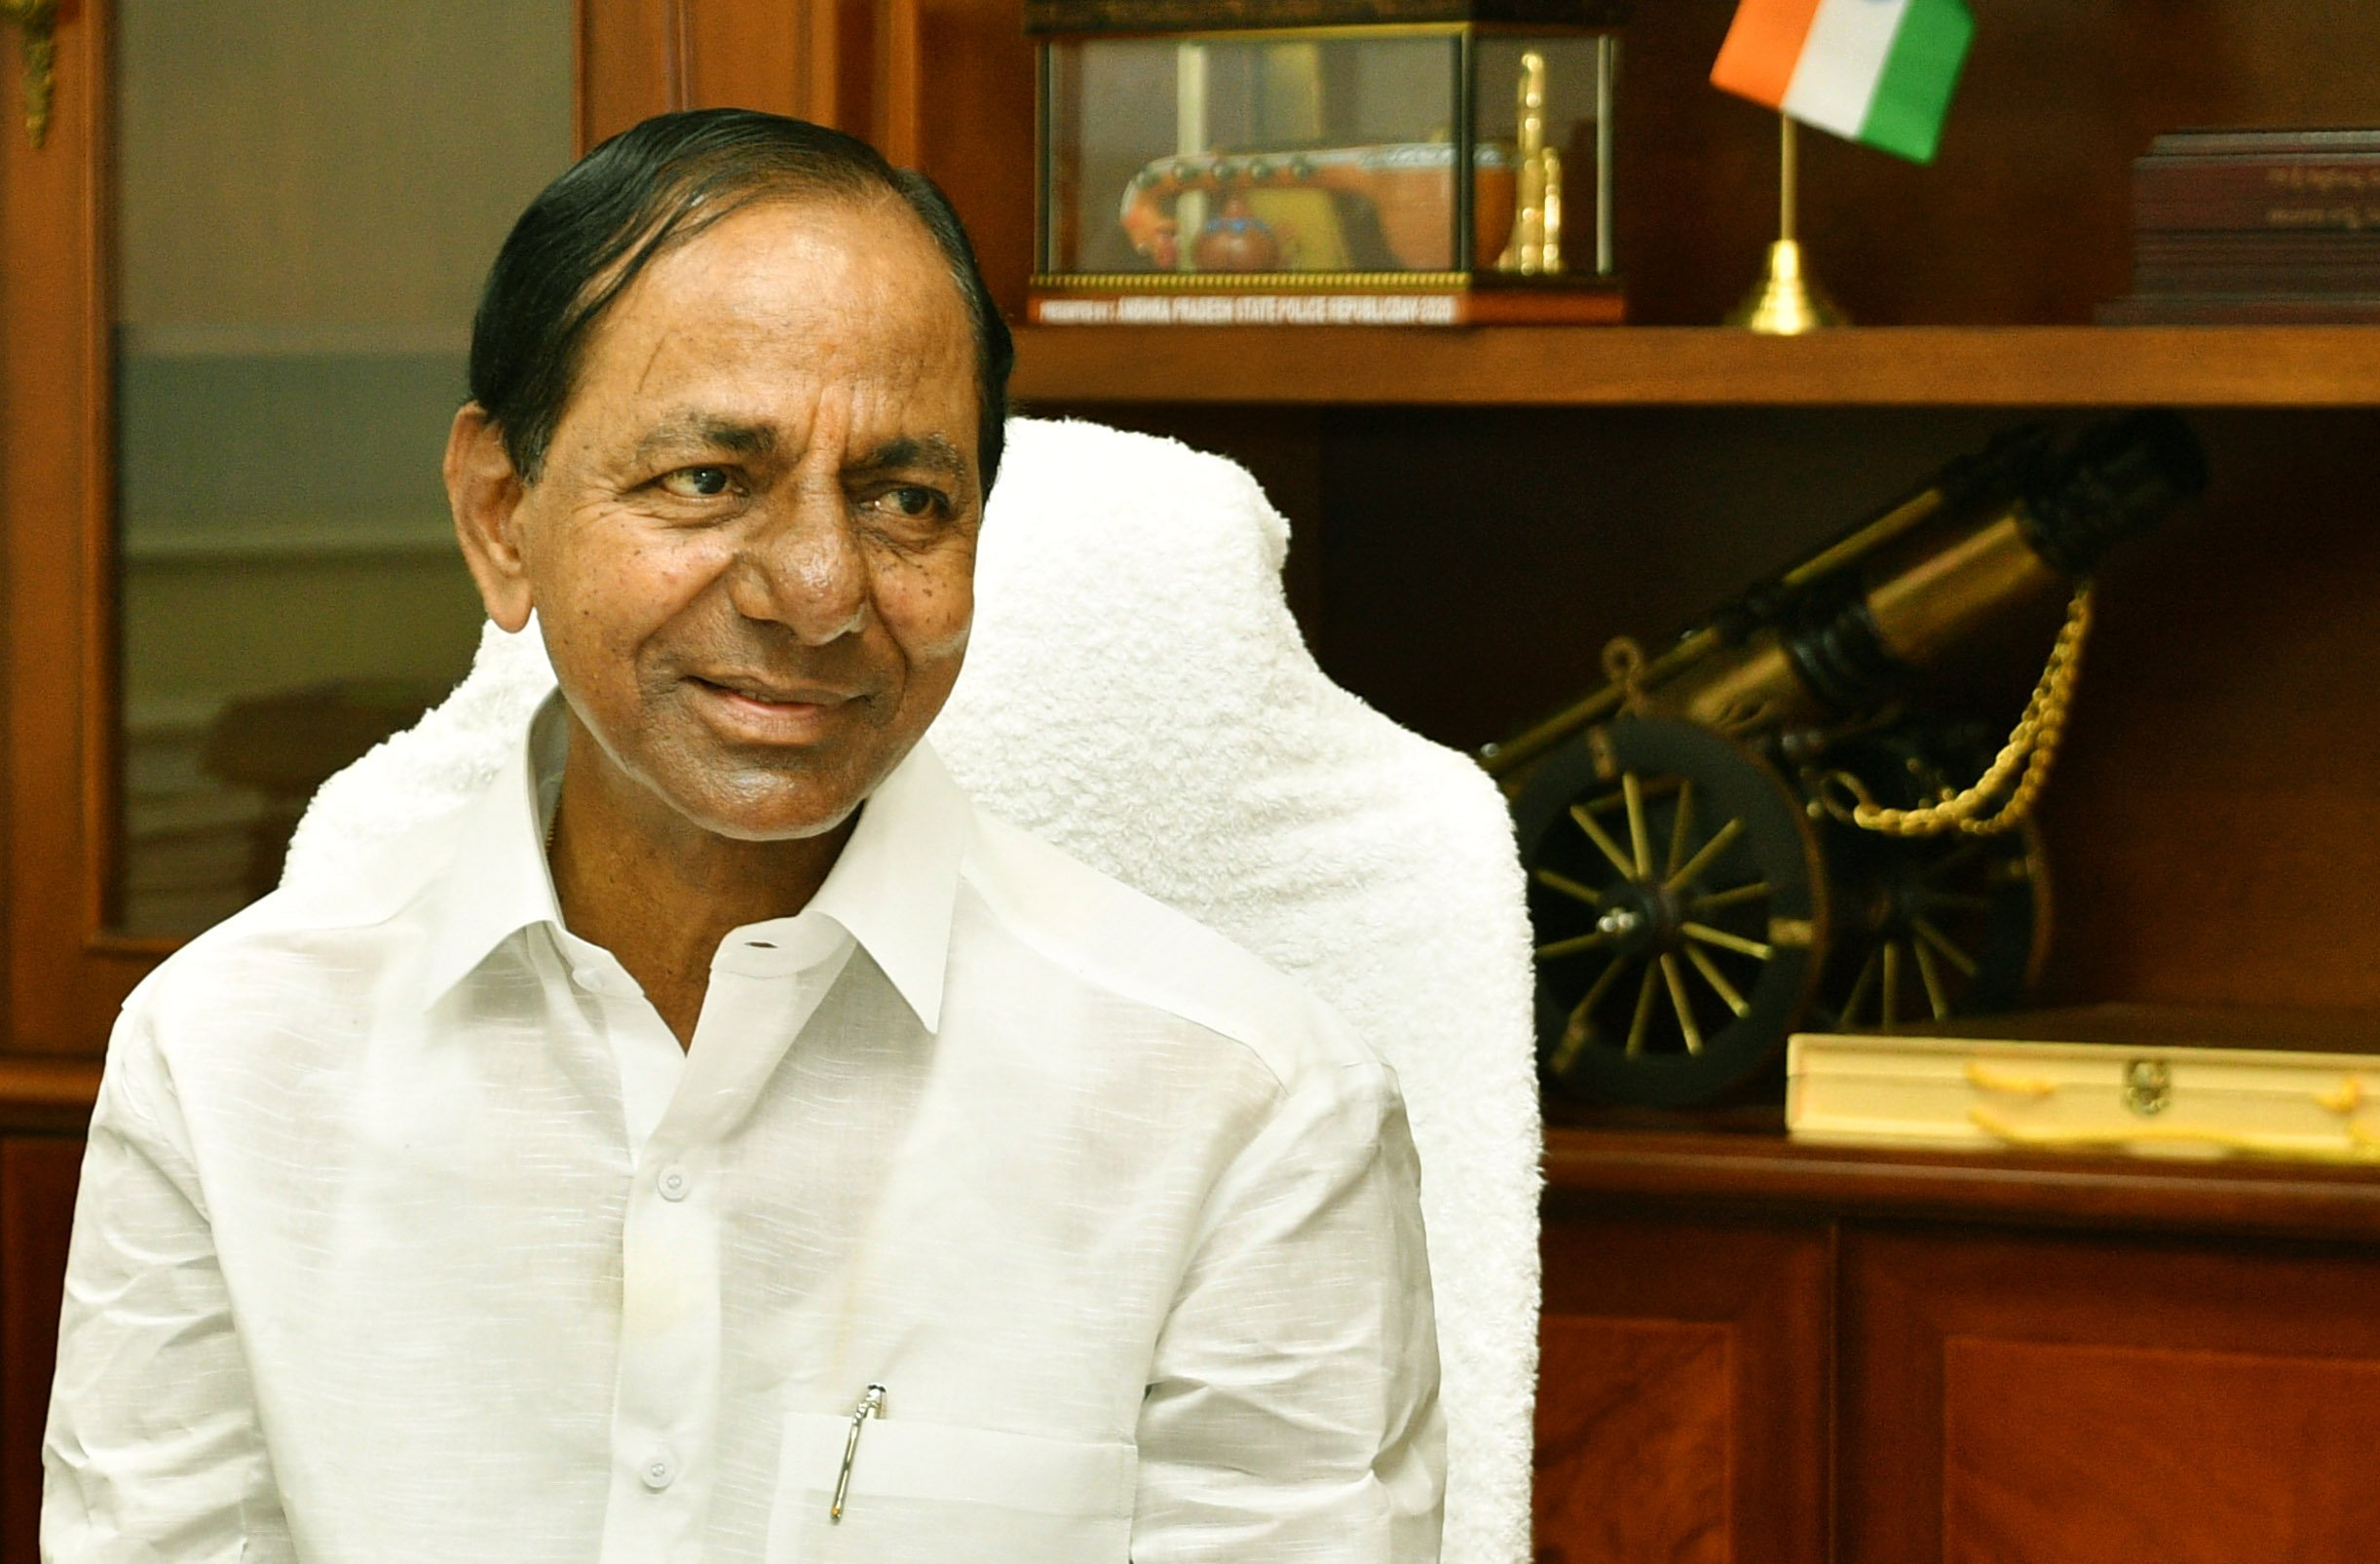 Newyear gift Telangana CM announces salary hike for all govt employees